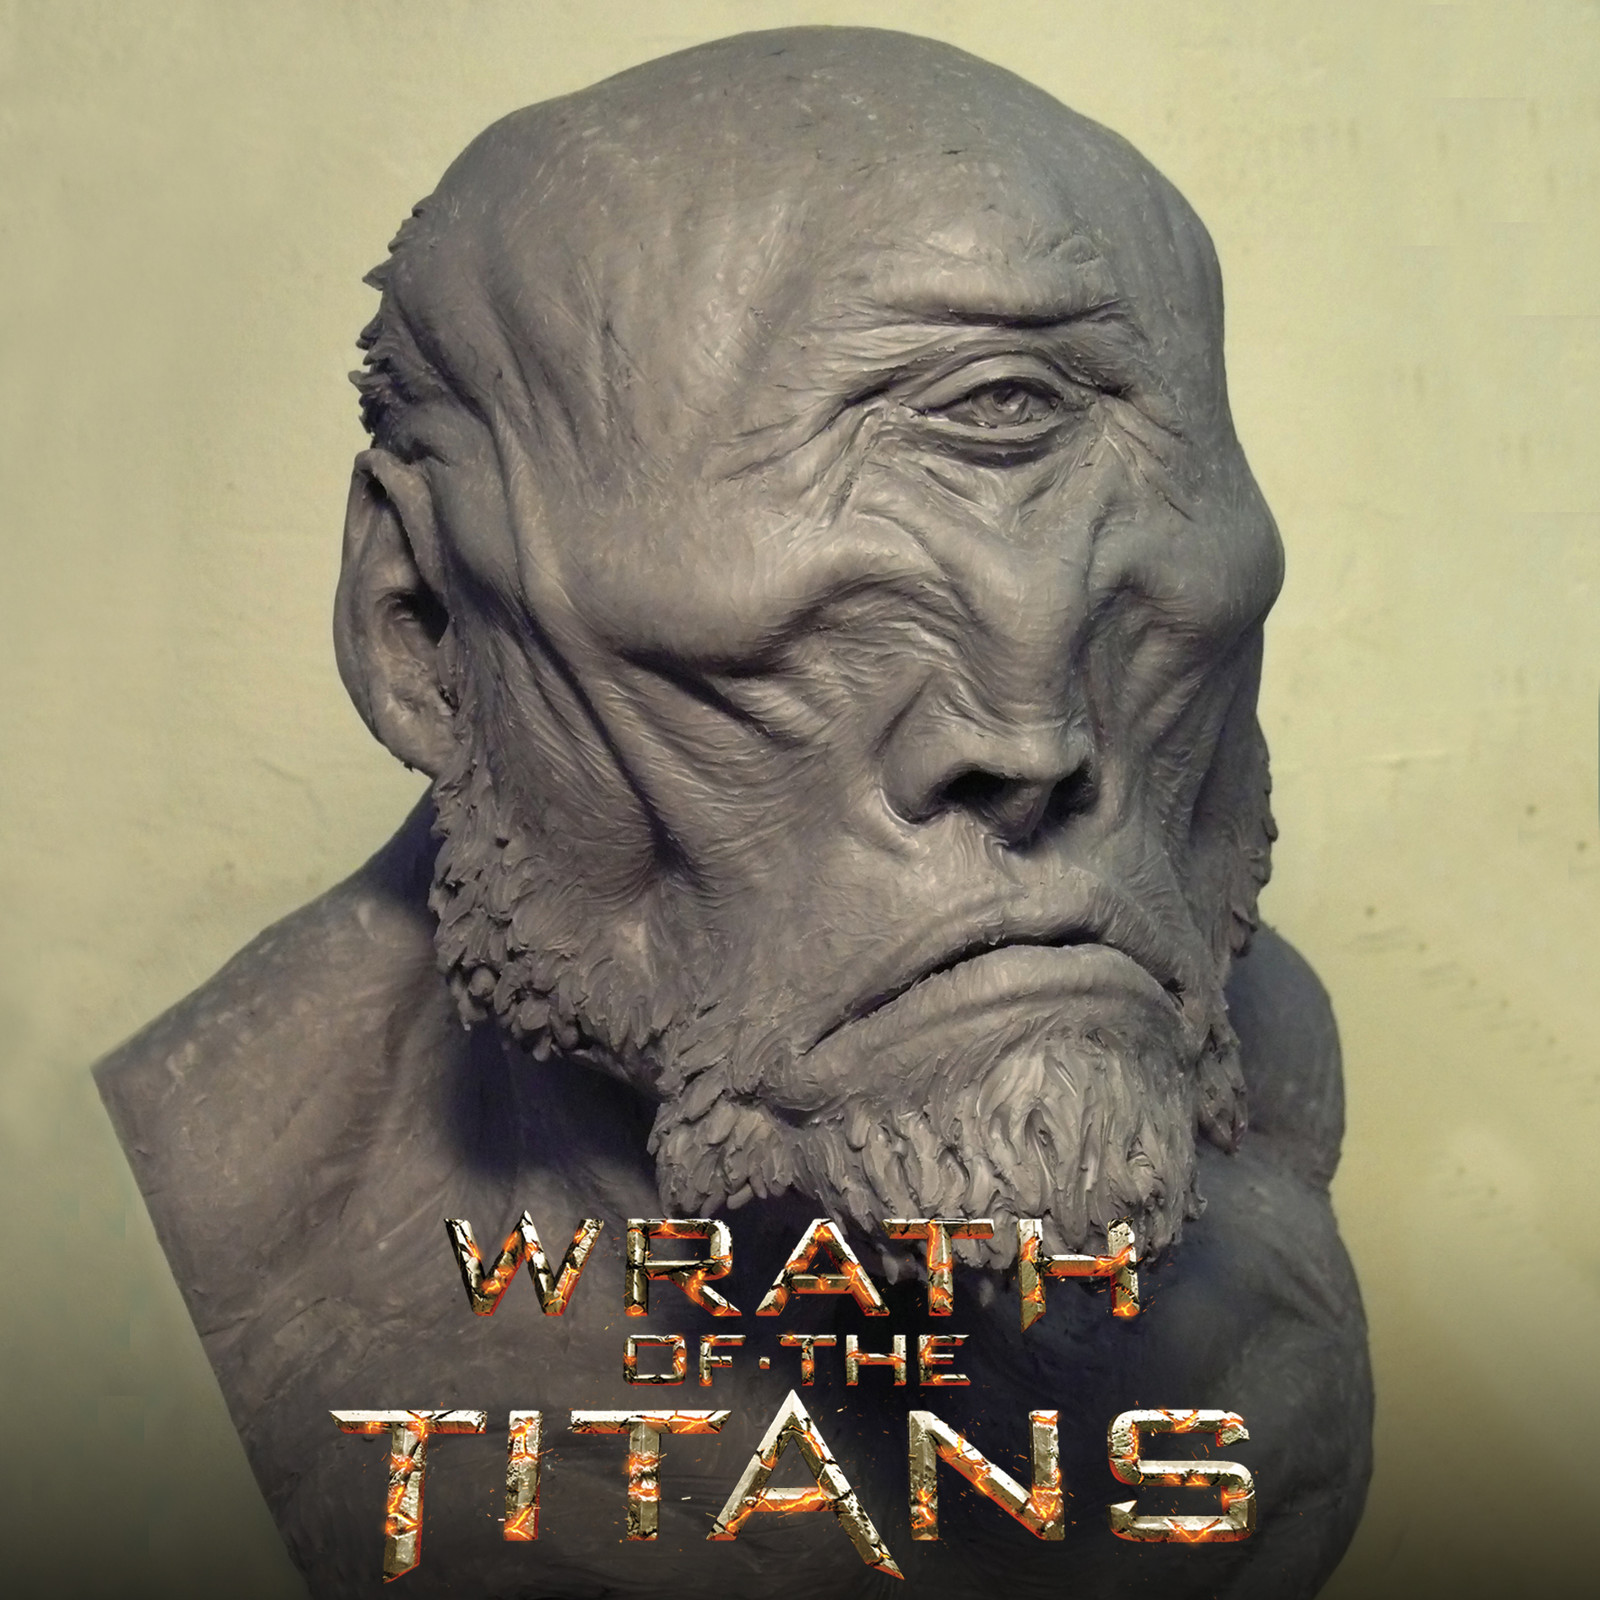 Wrath of the Titans - Cyclops